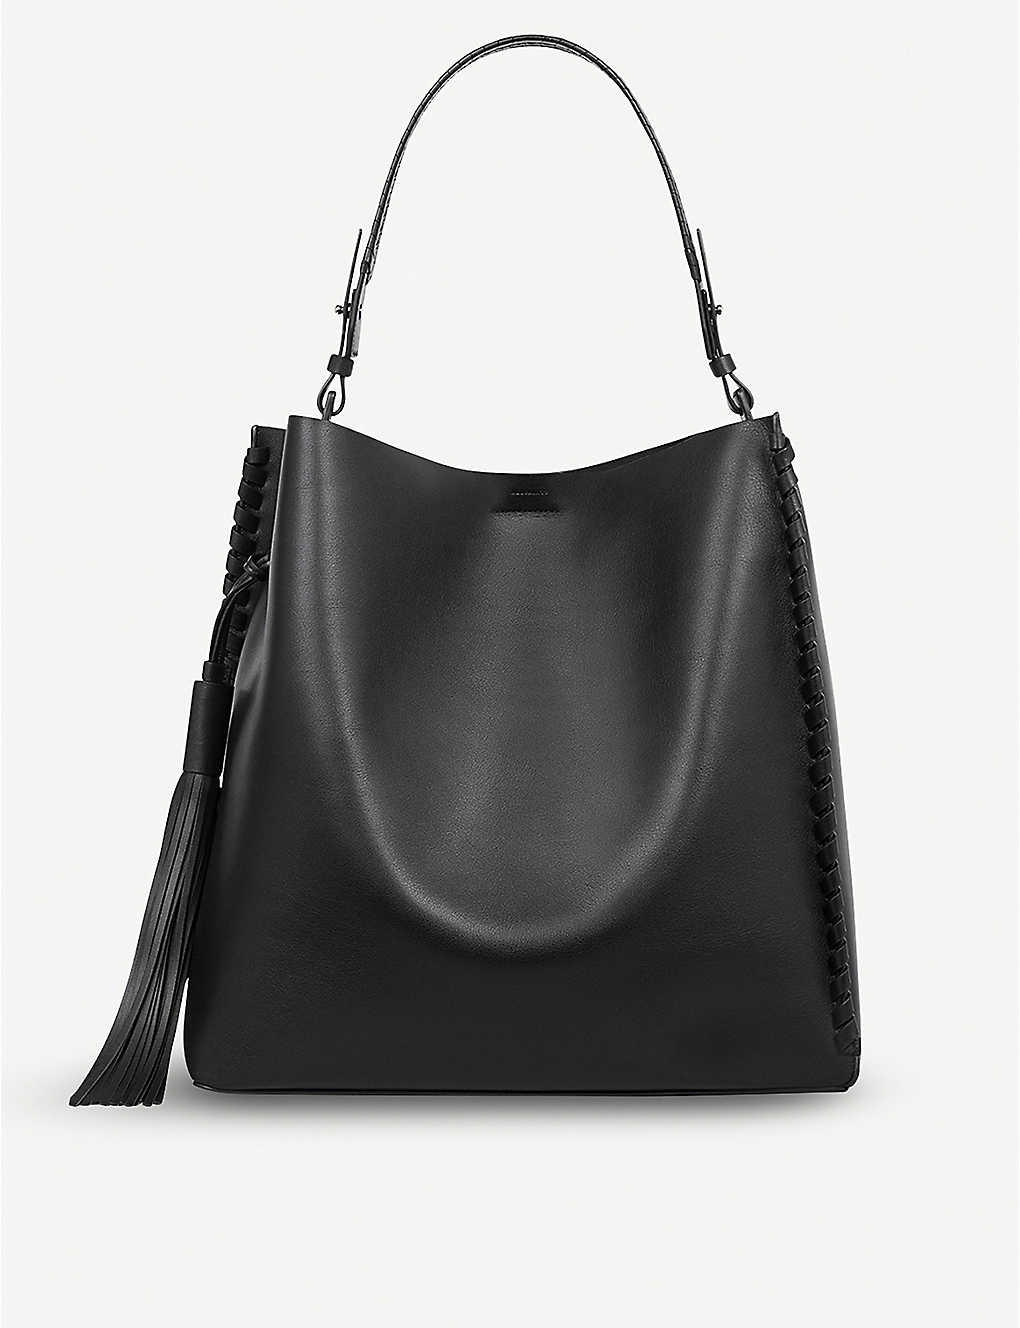 45c415d89c6 ALLSAINTS - Kepi North South leather tote | Selfridges.com